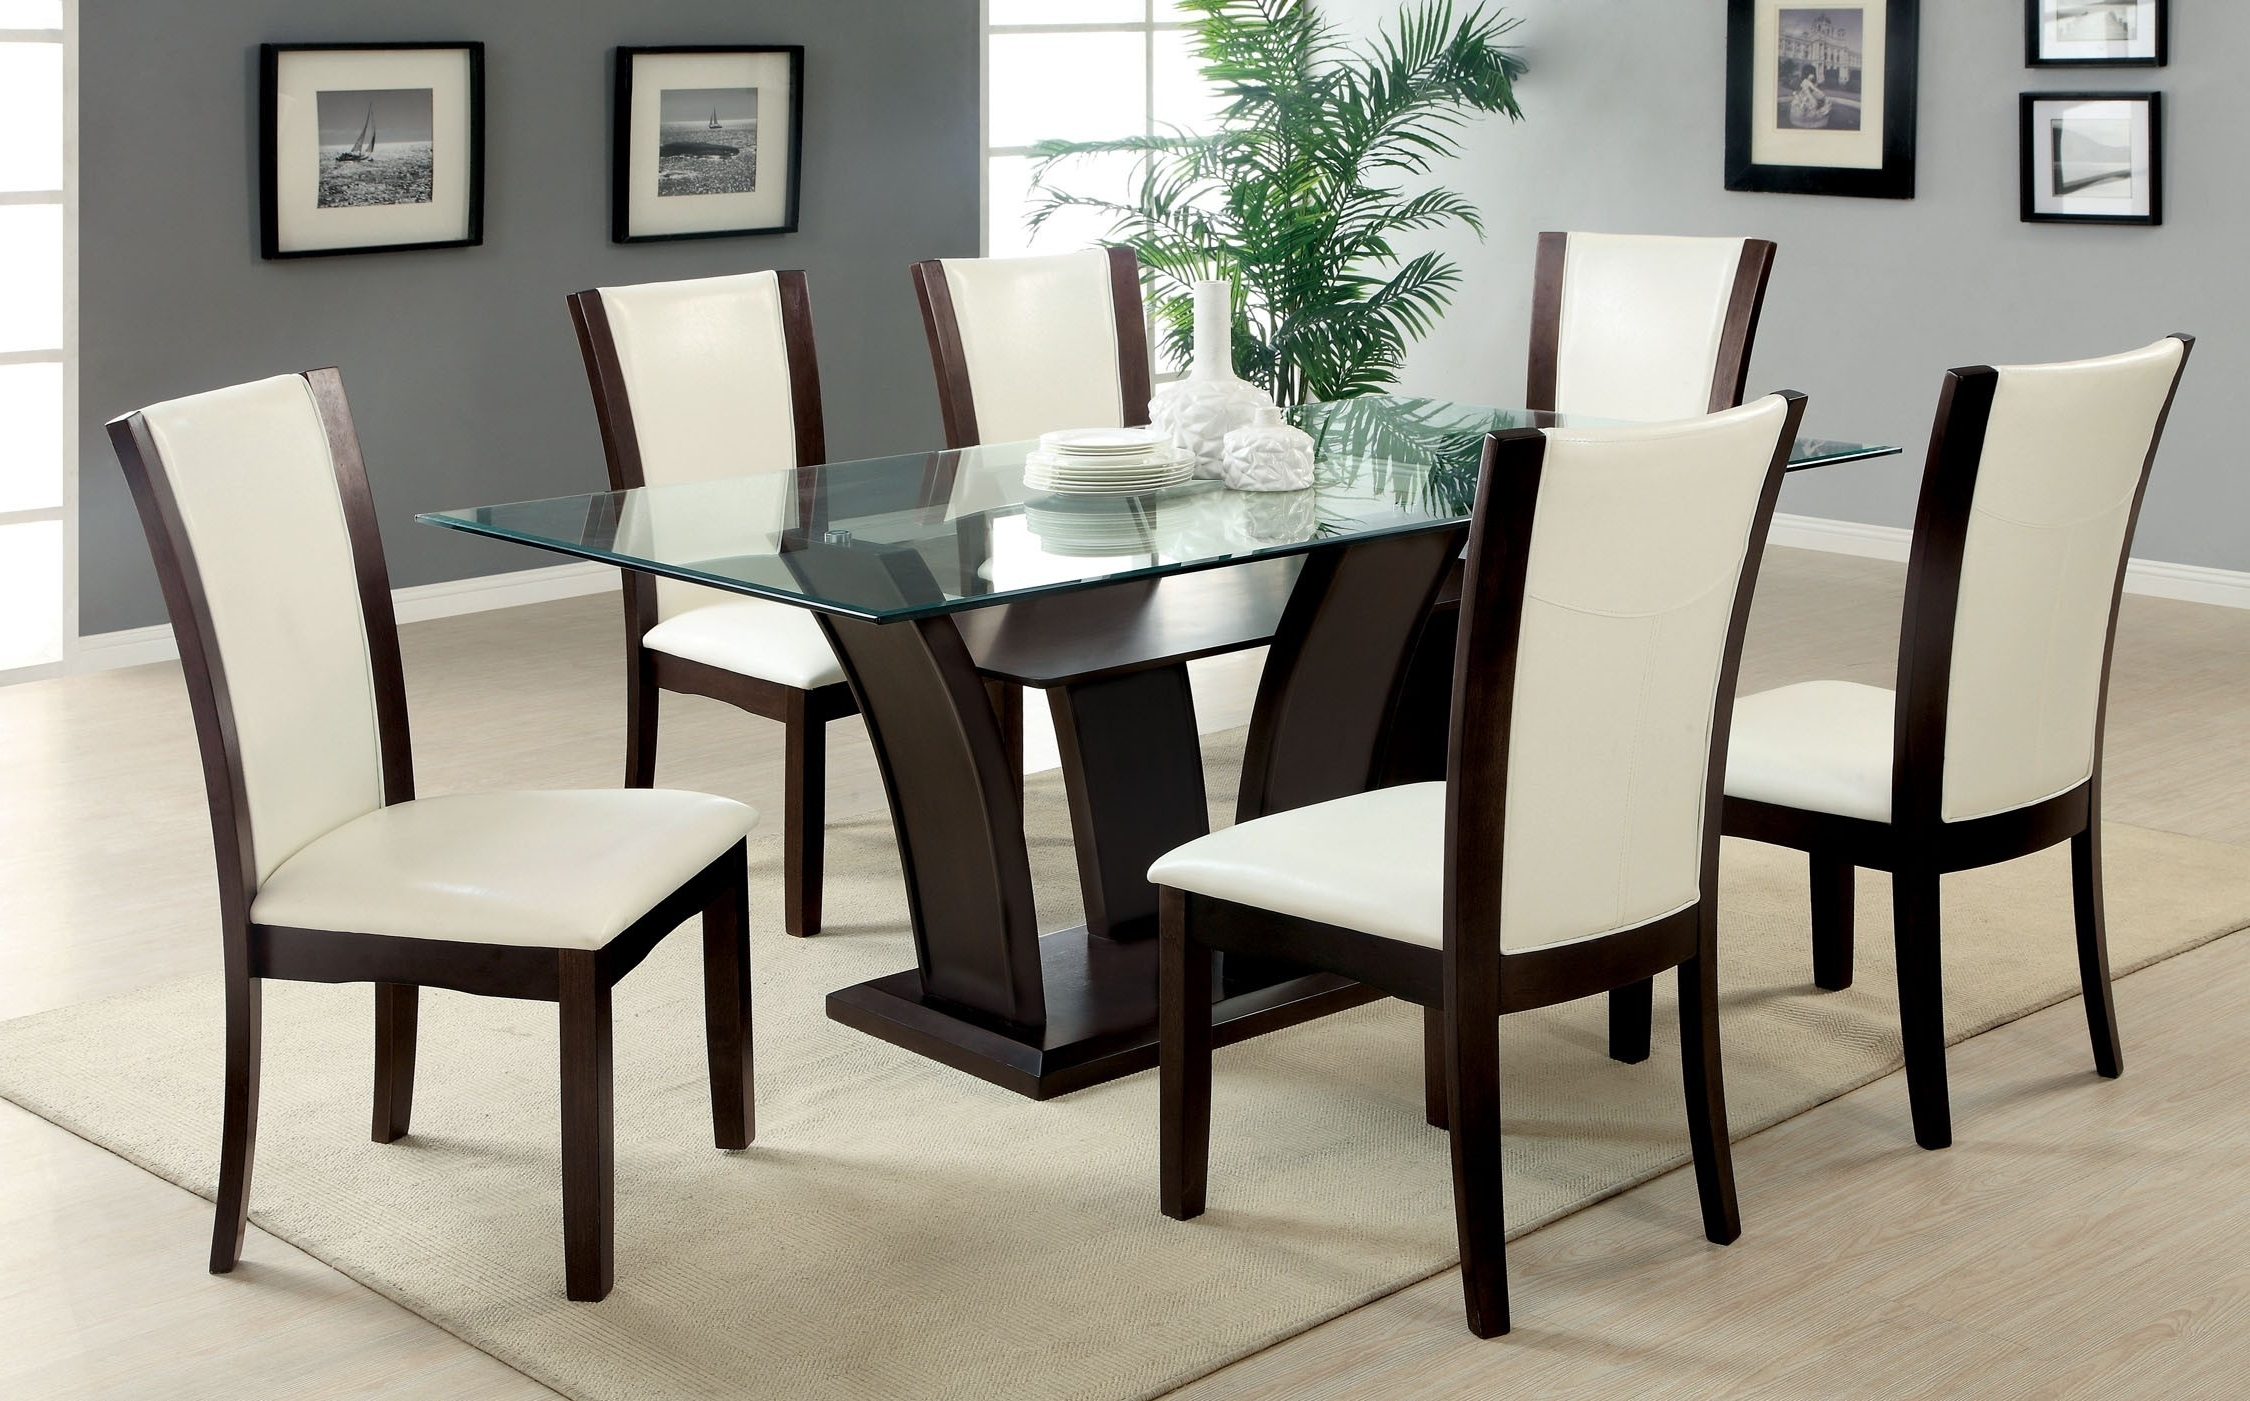 Well Liked 8 Seater White Dining Tables Inside Glamorous Round Dining Table Set For 8 Dimensions Large Chairs And (View 19 of 25)